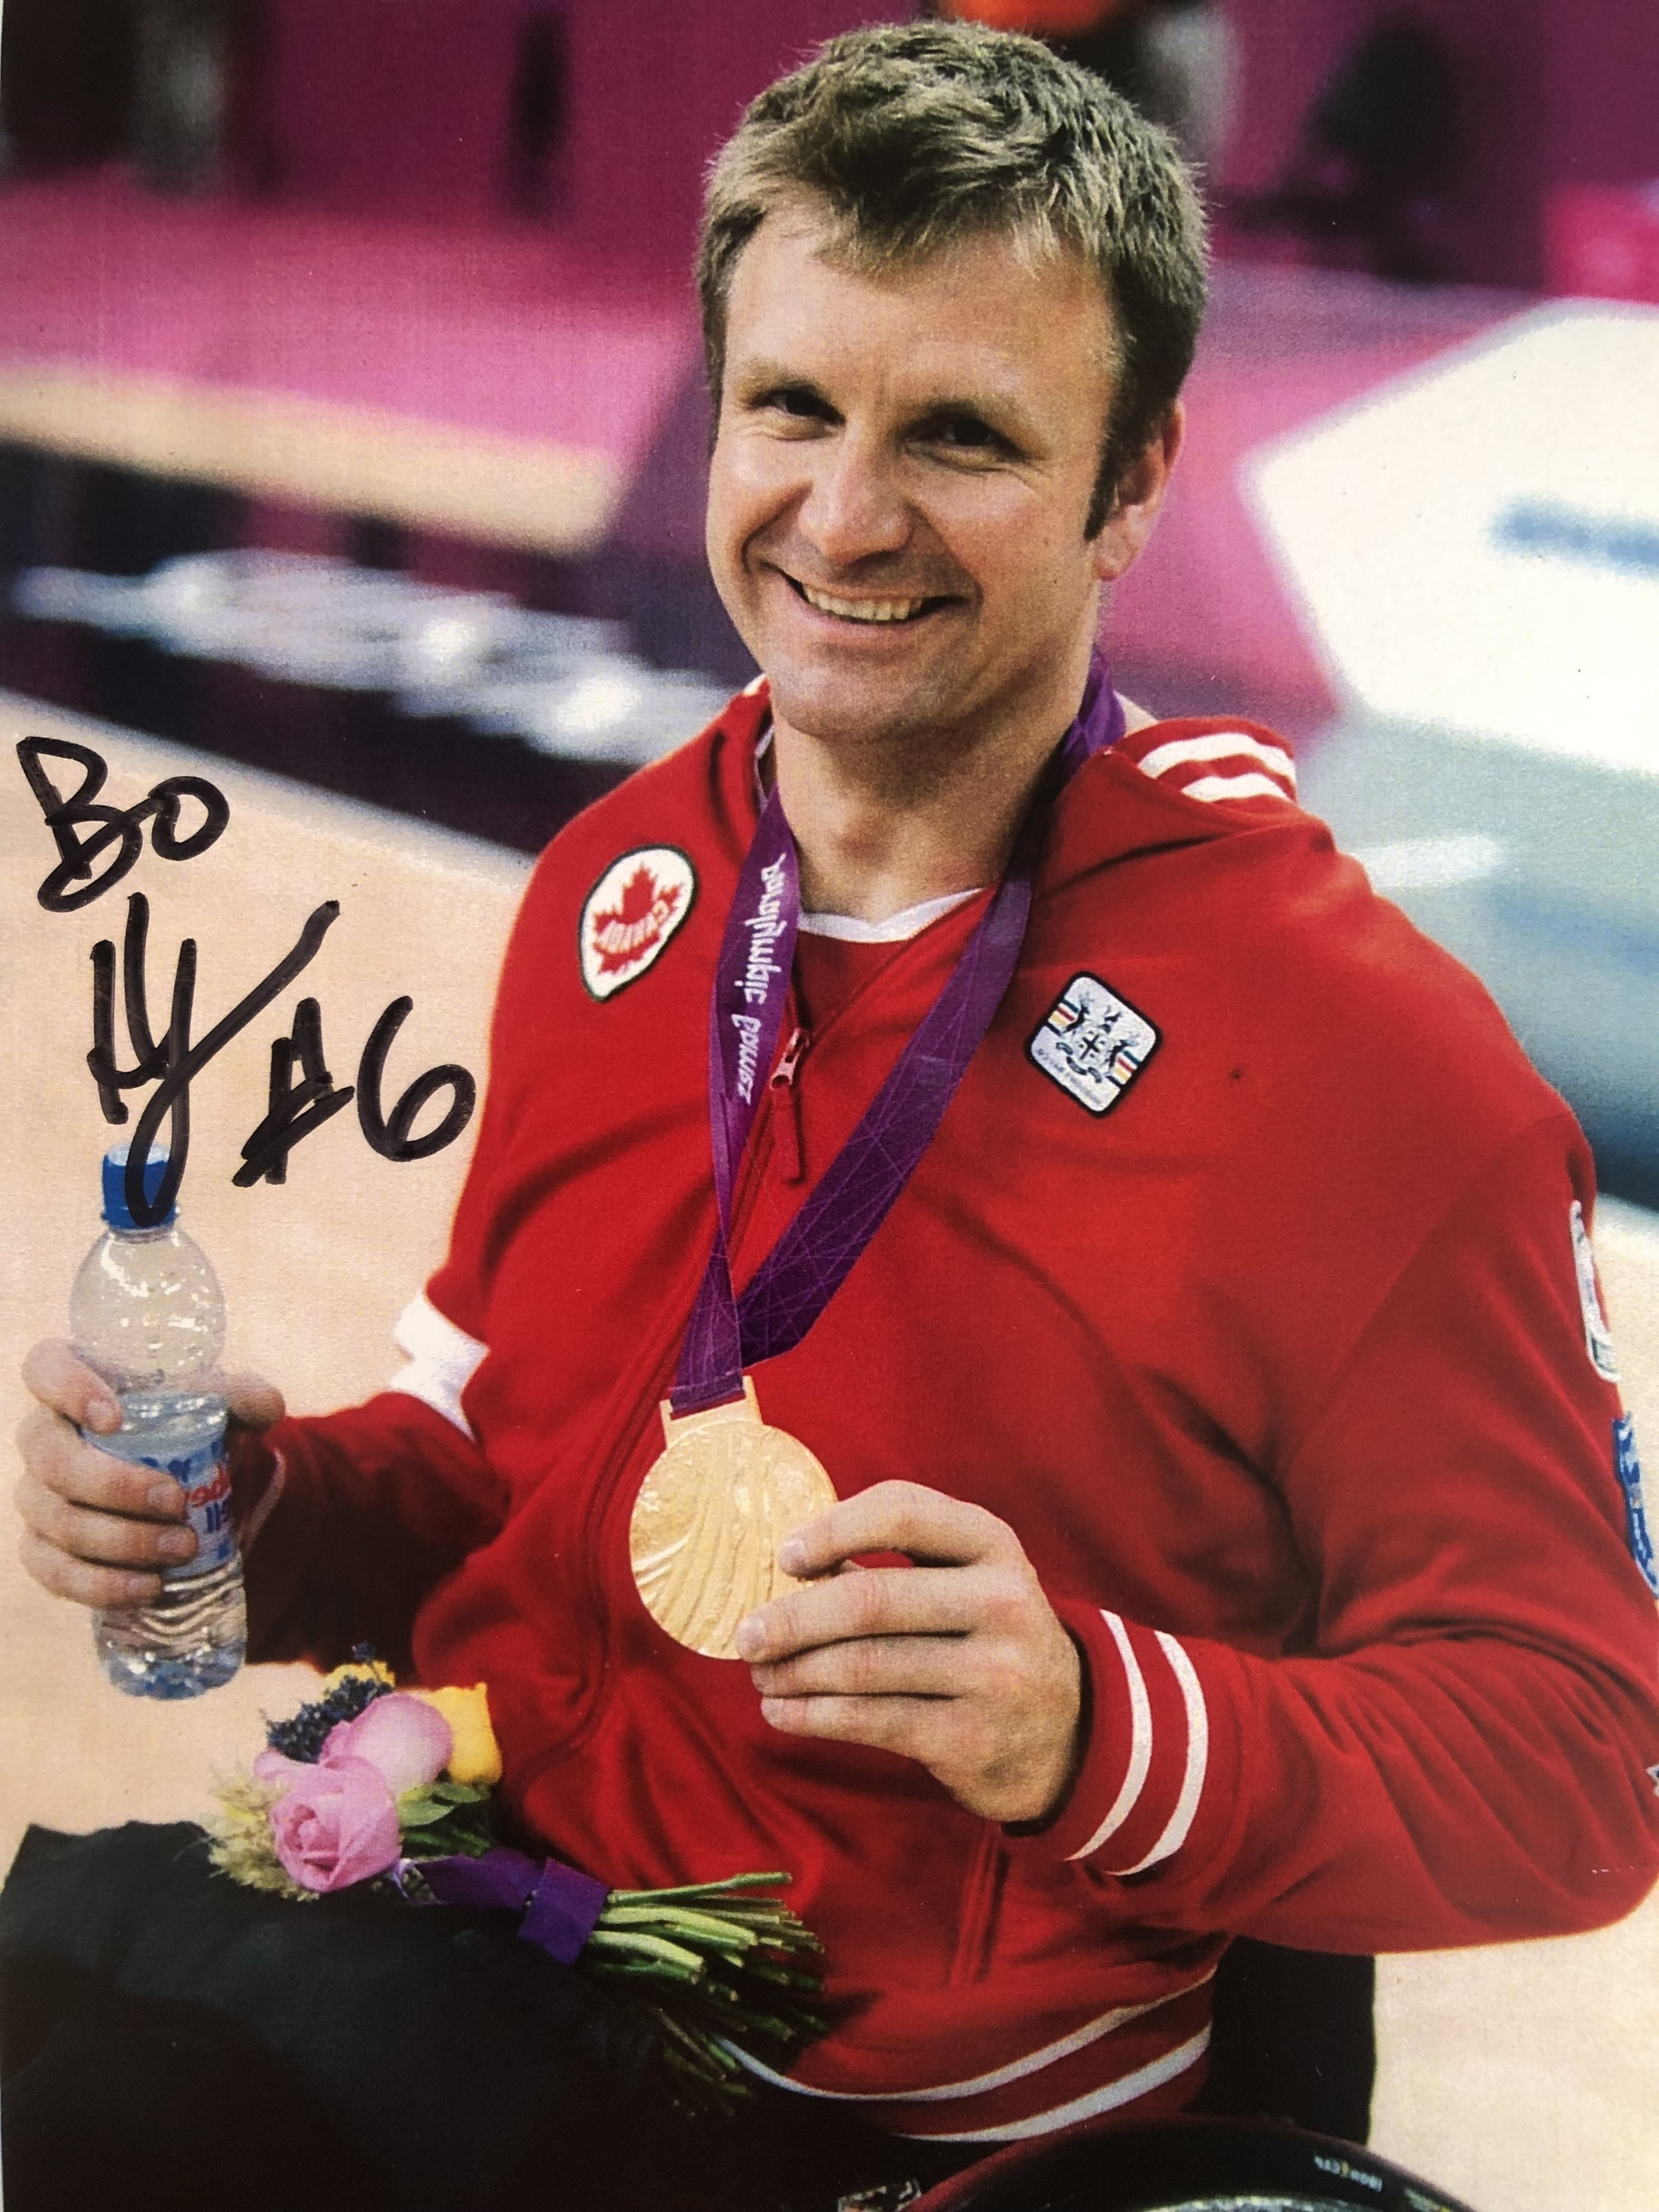 Bo Hedges Gold Medal, London 2012 Paralympics